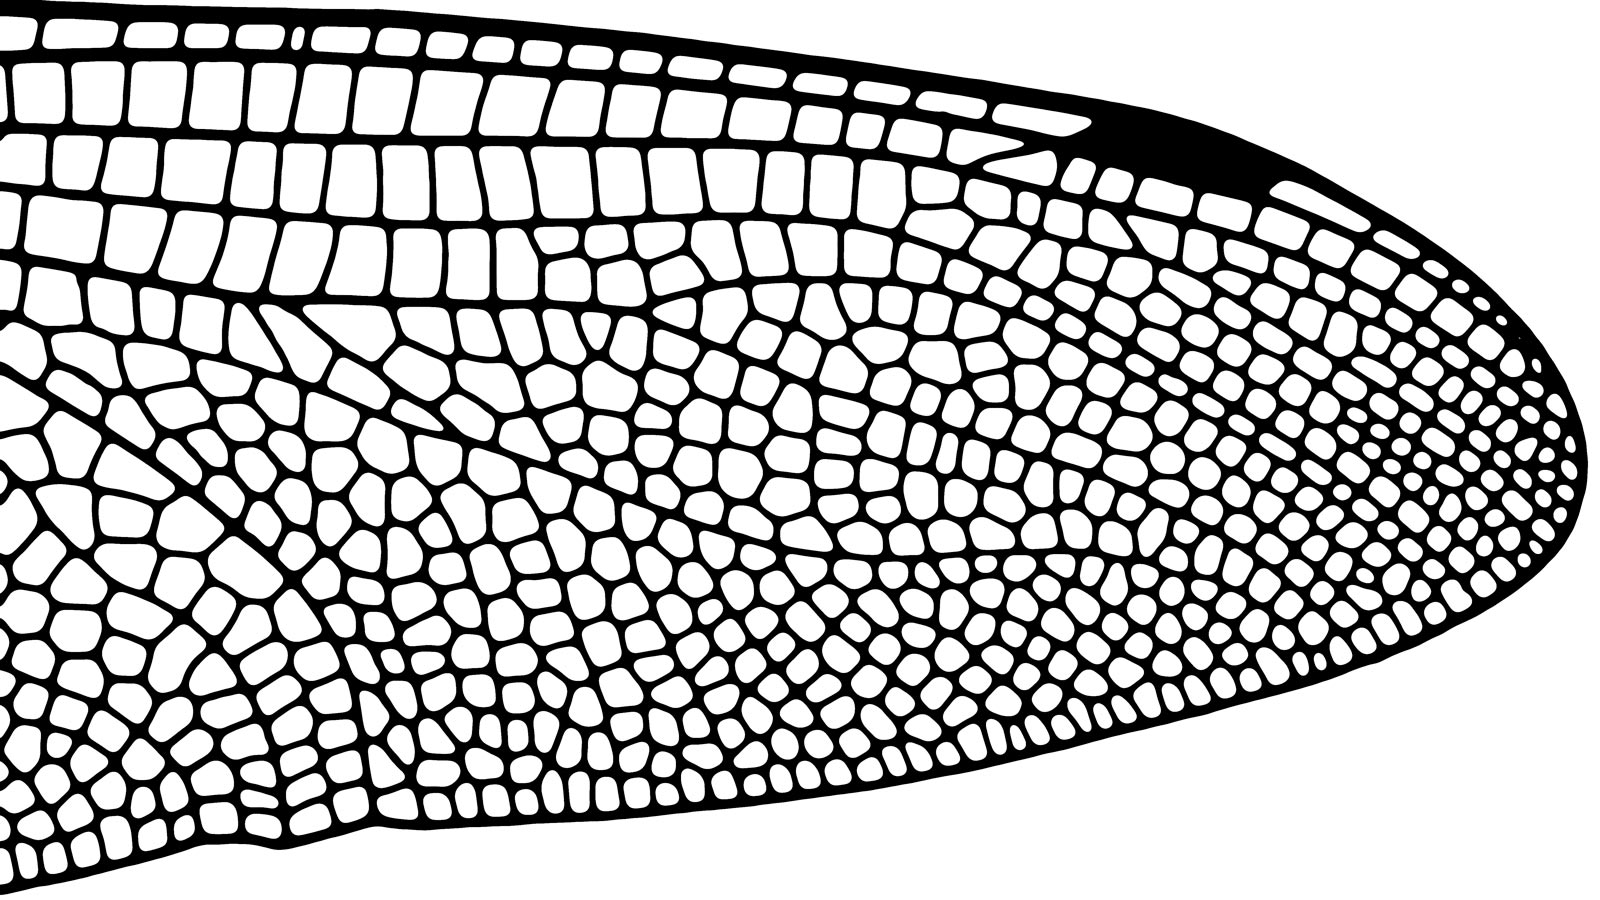 insect-wing-structure.jpg